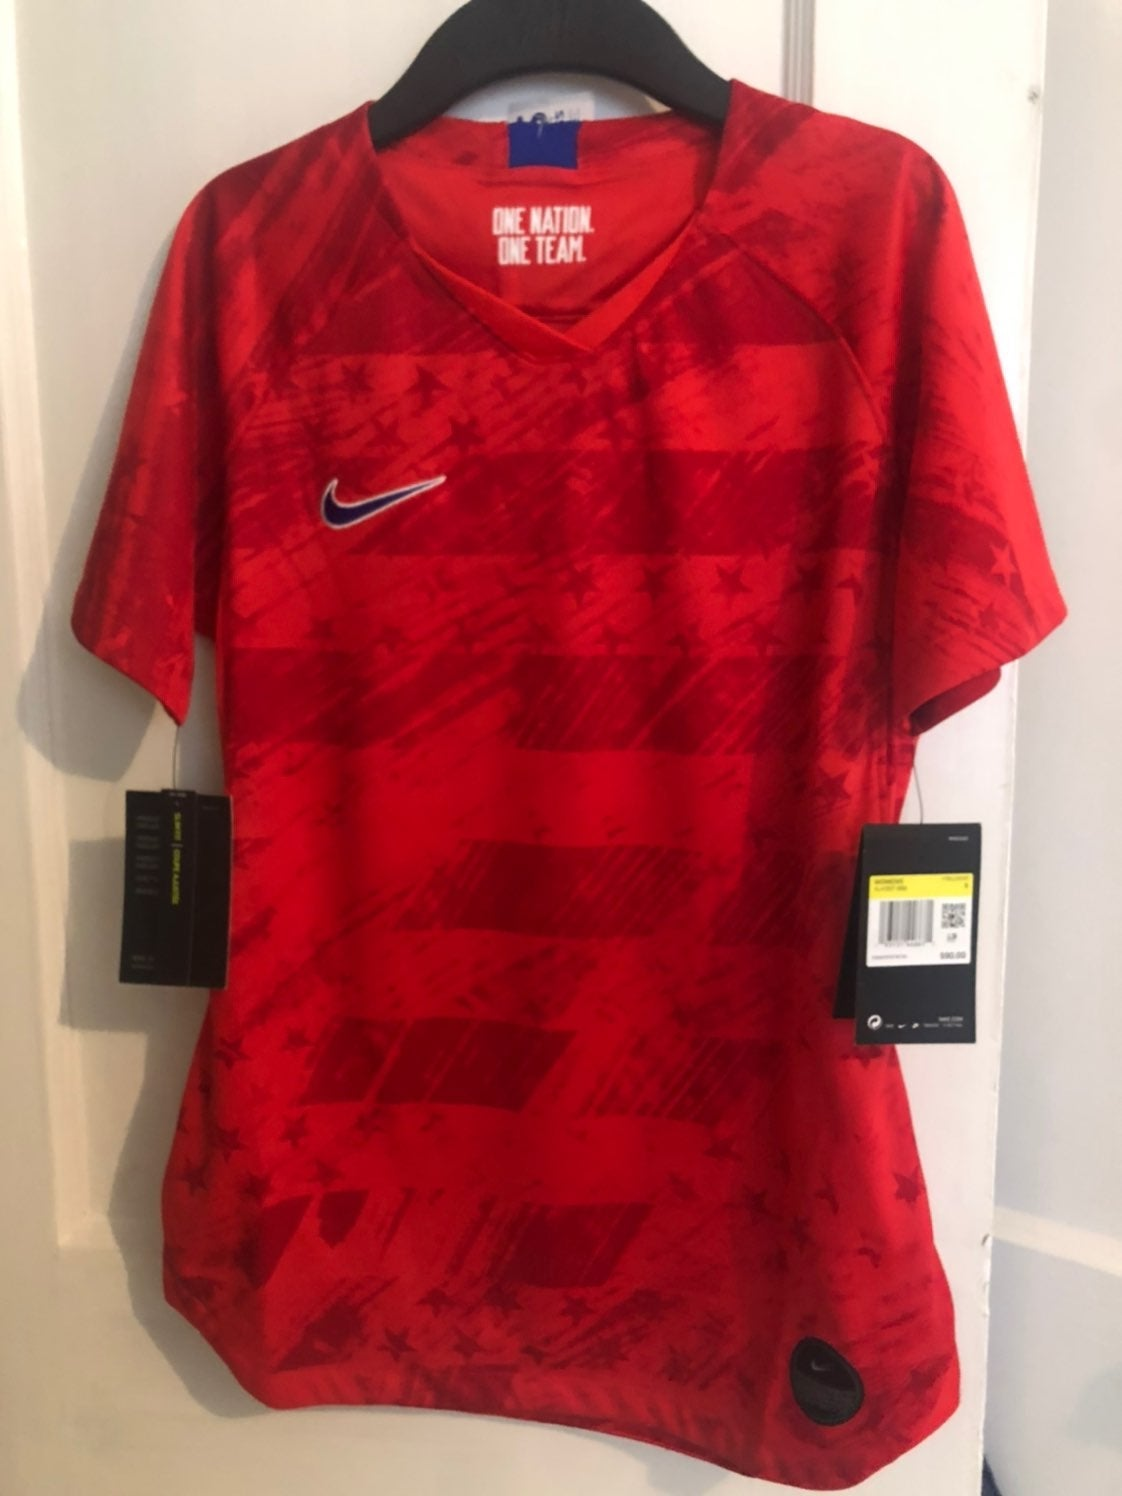 Nike Team USA Soccer Jersey